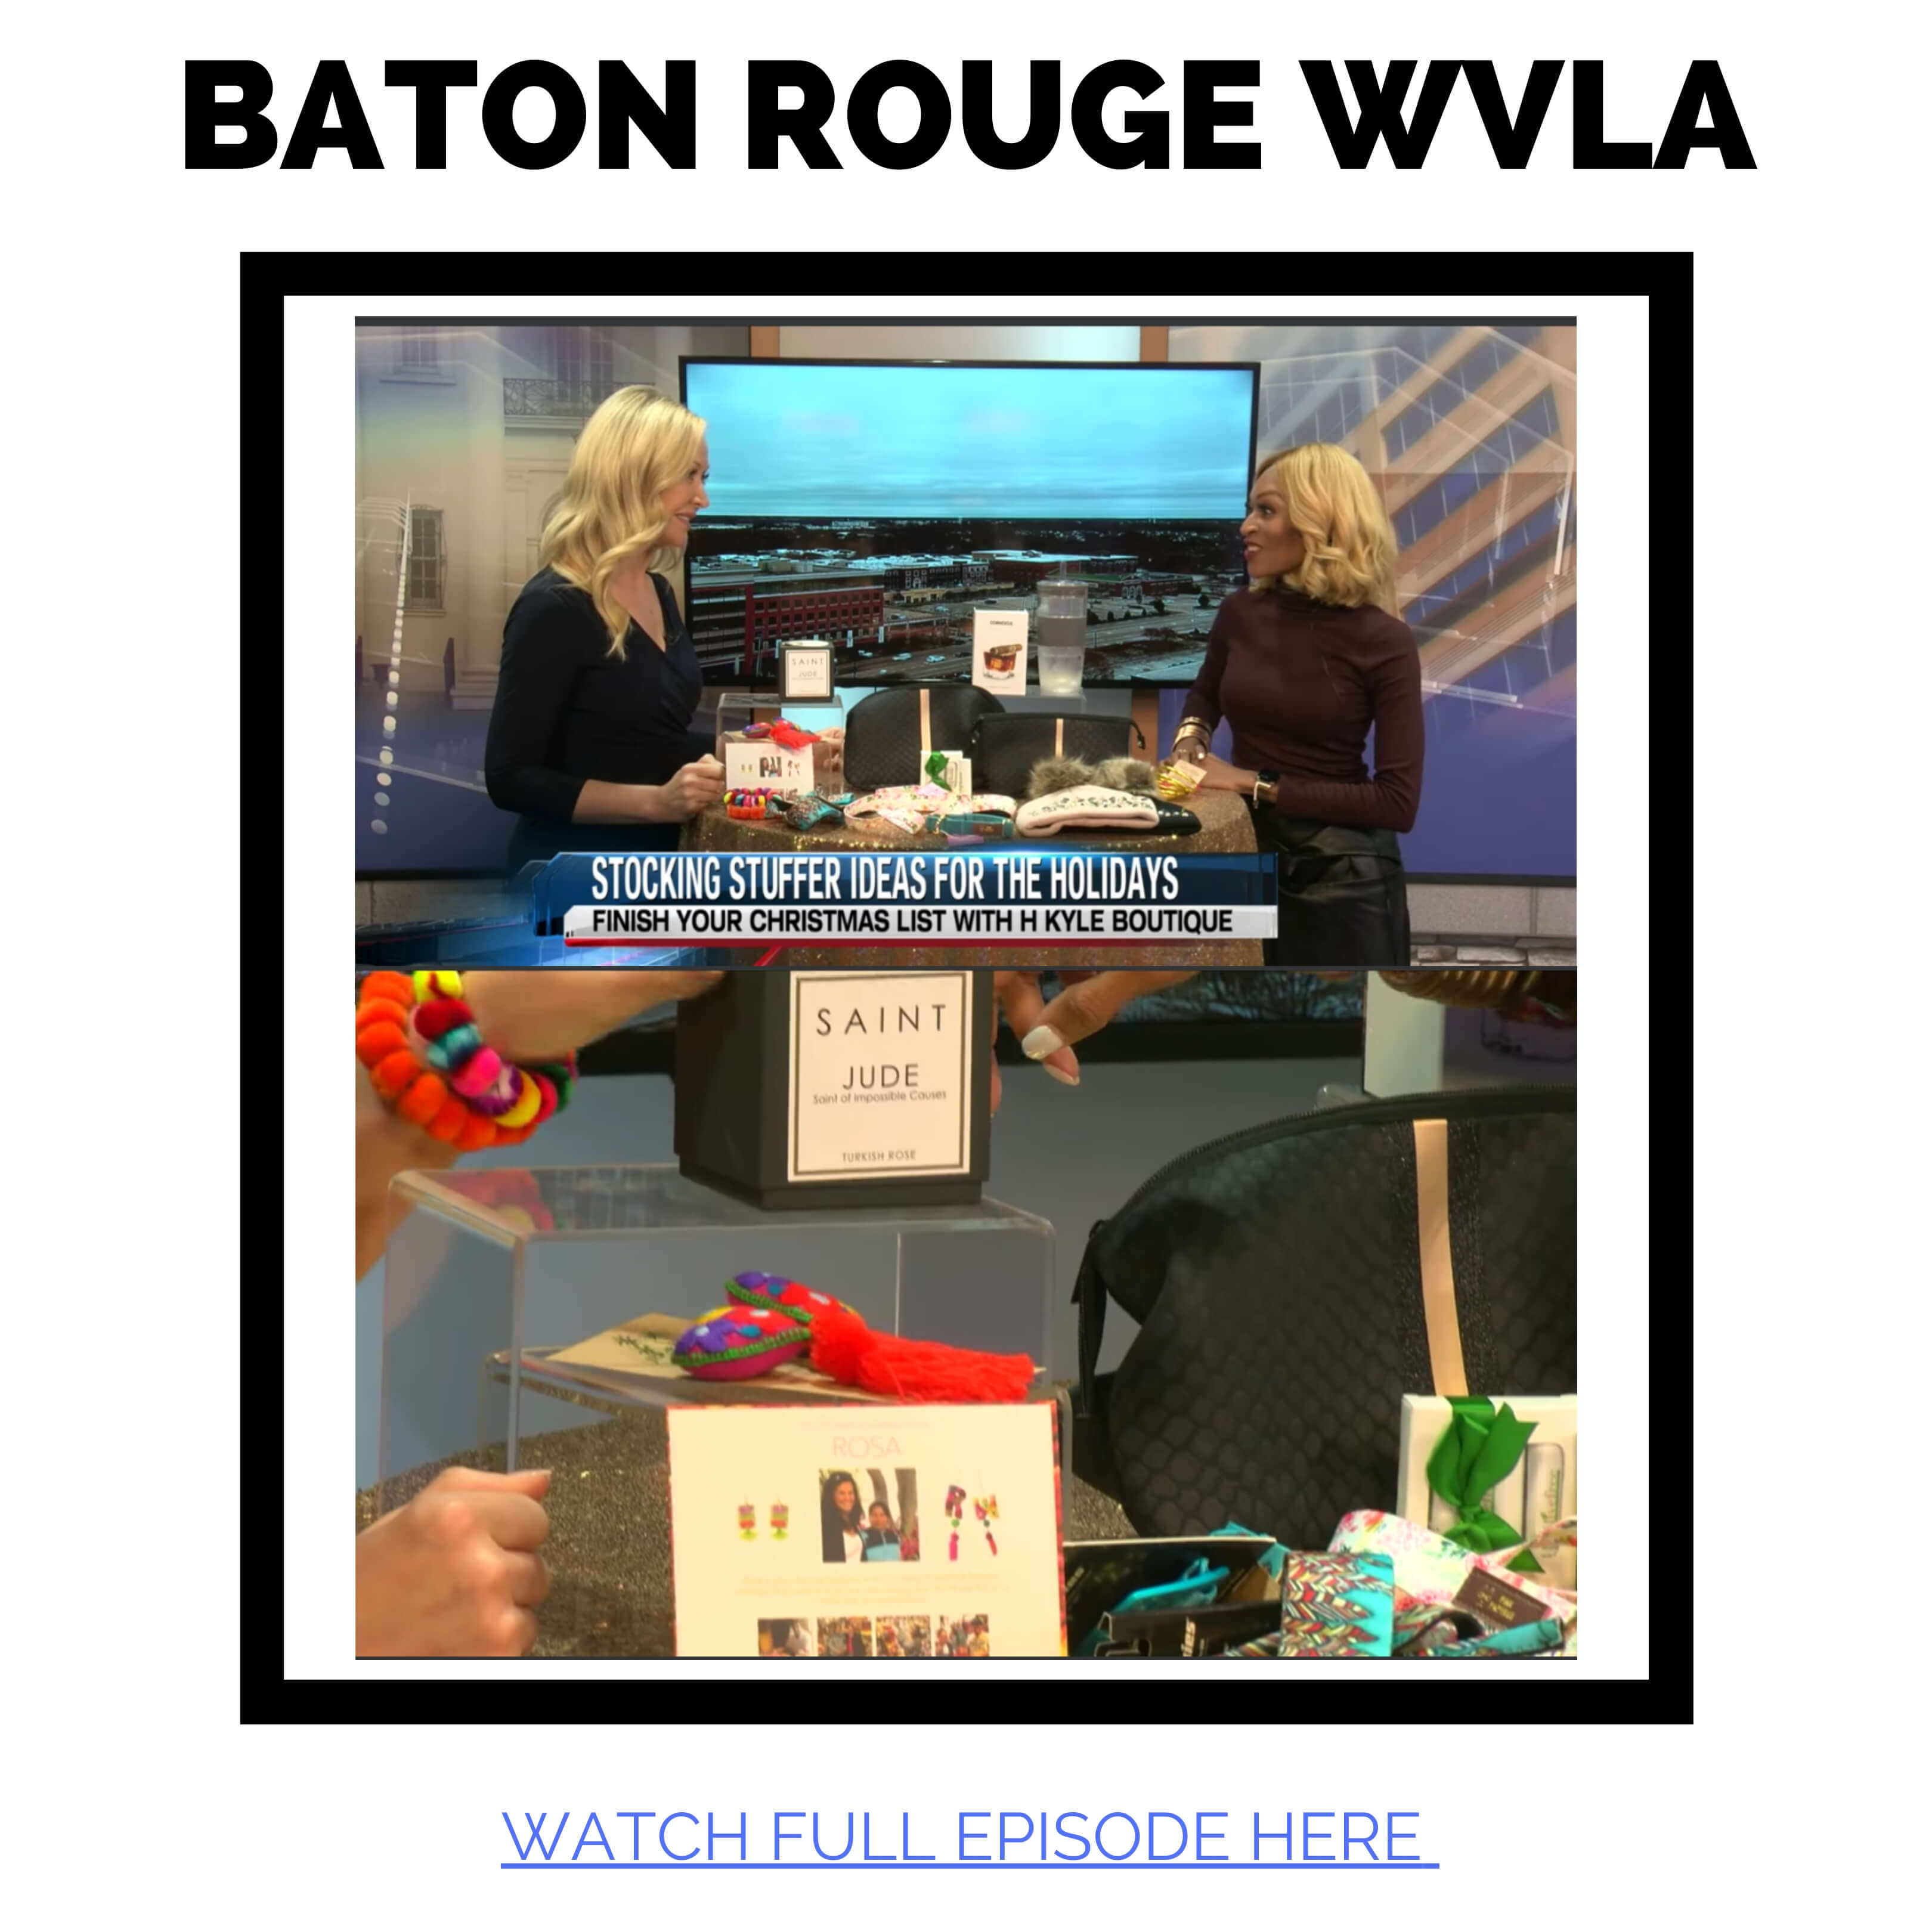 JAC featured in Baton Rouge WVLA